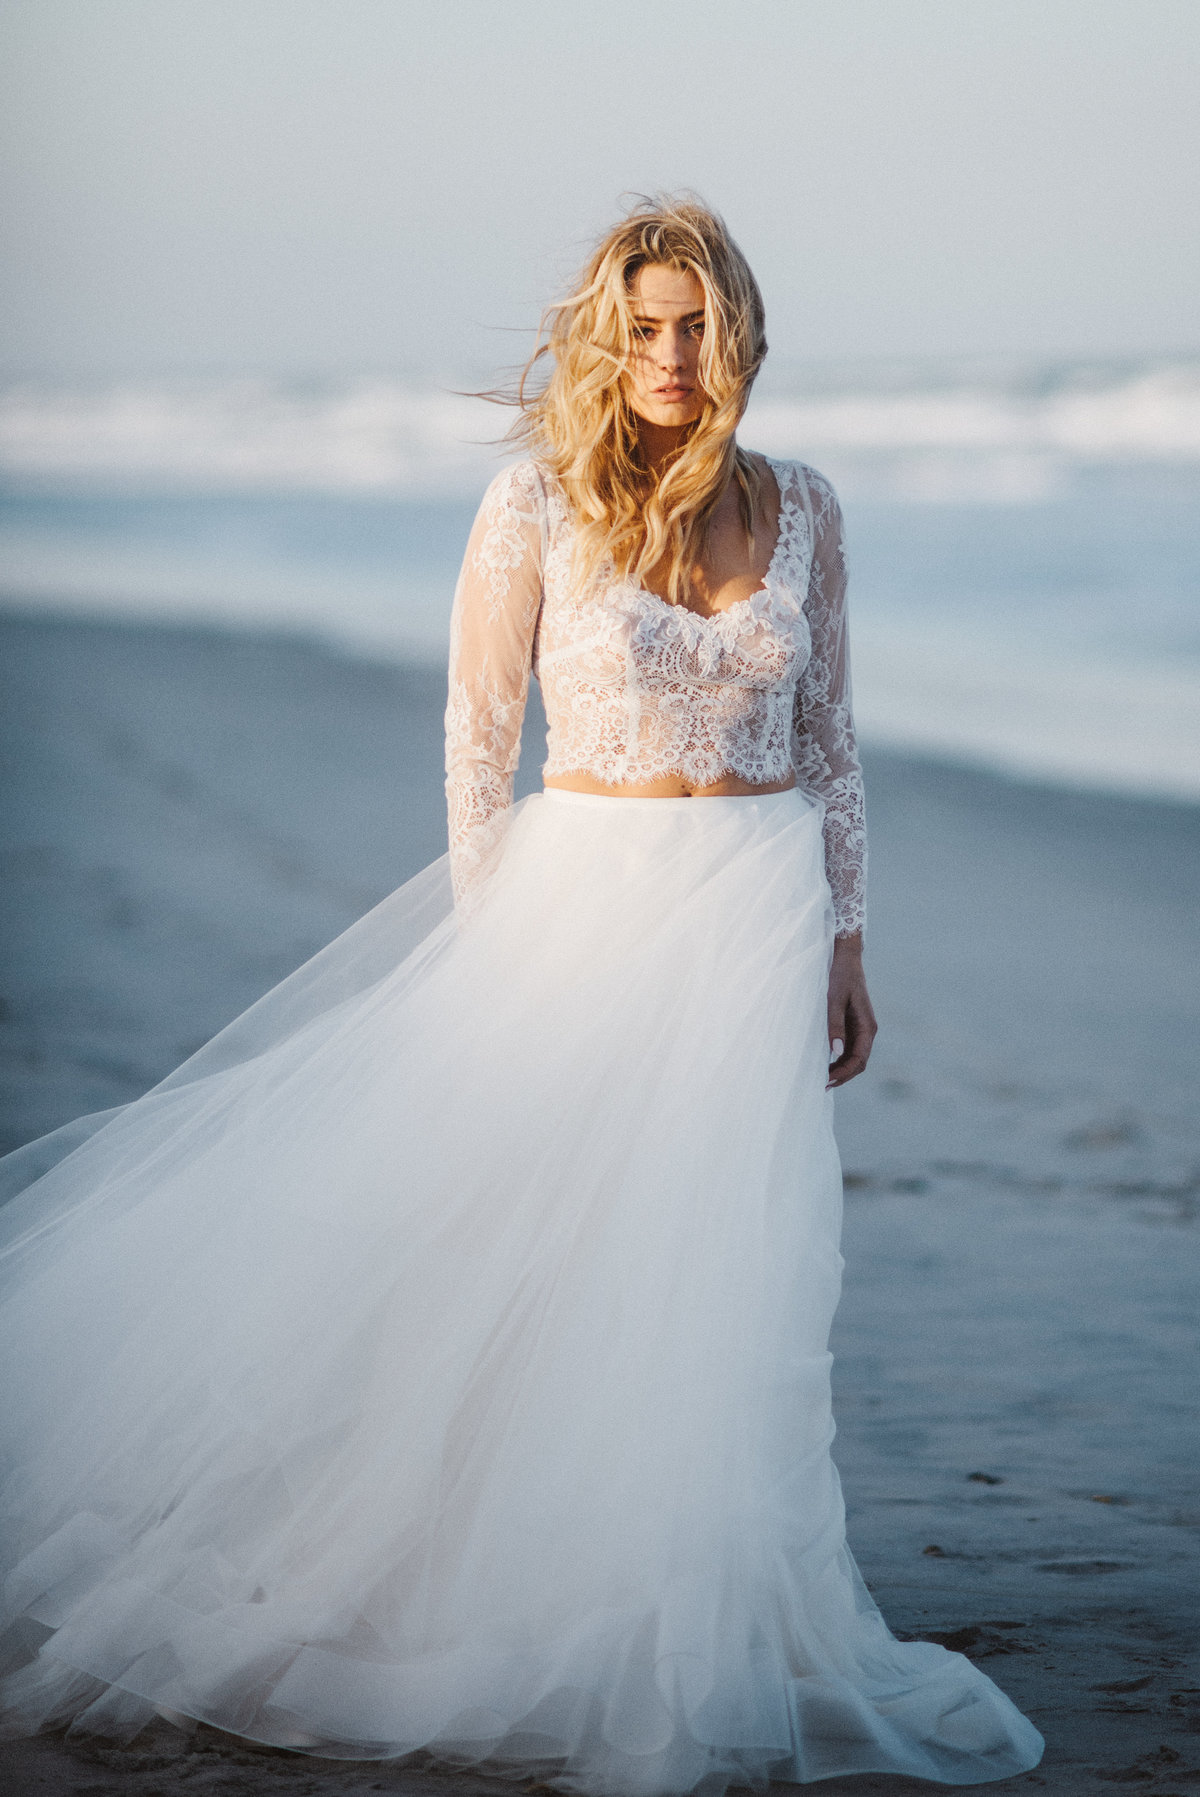 wilmington_beach_elopement_2016-14